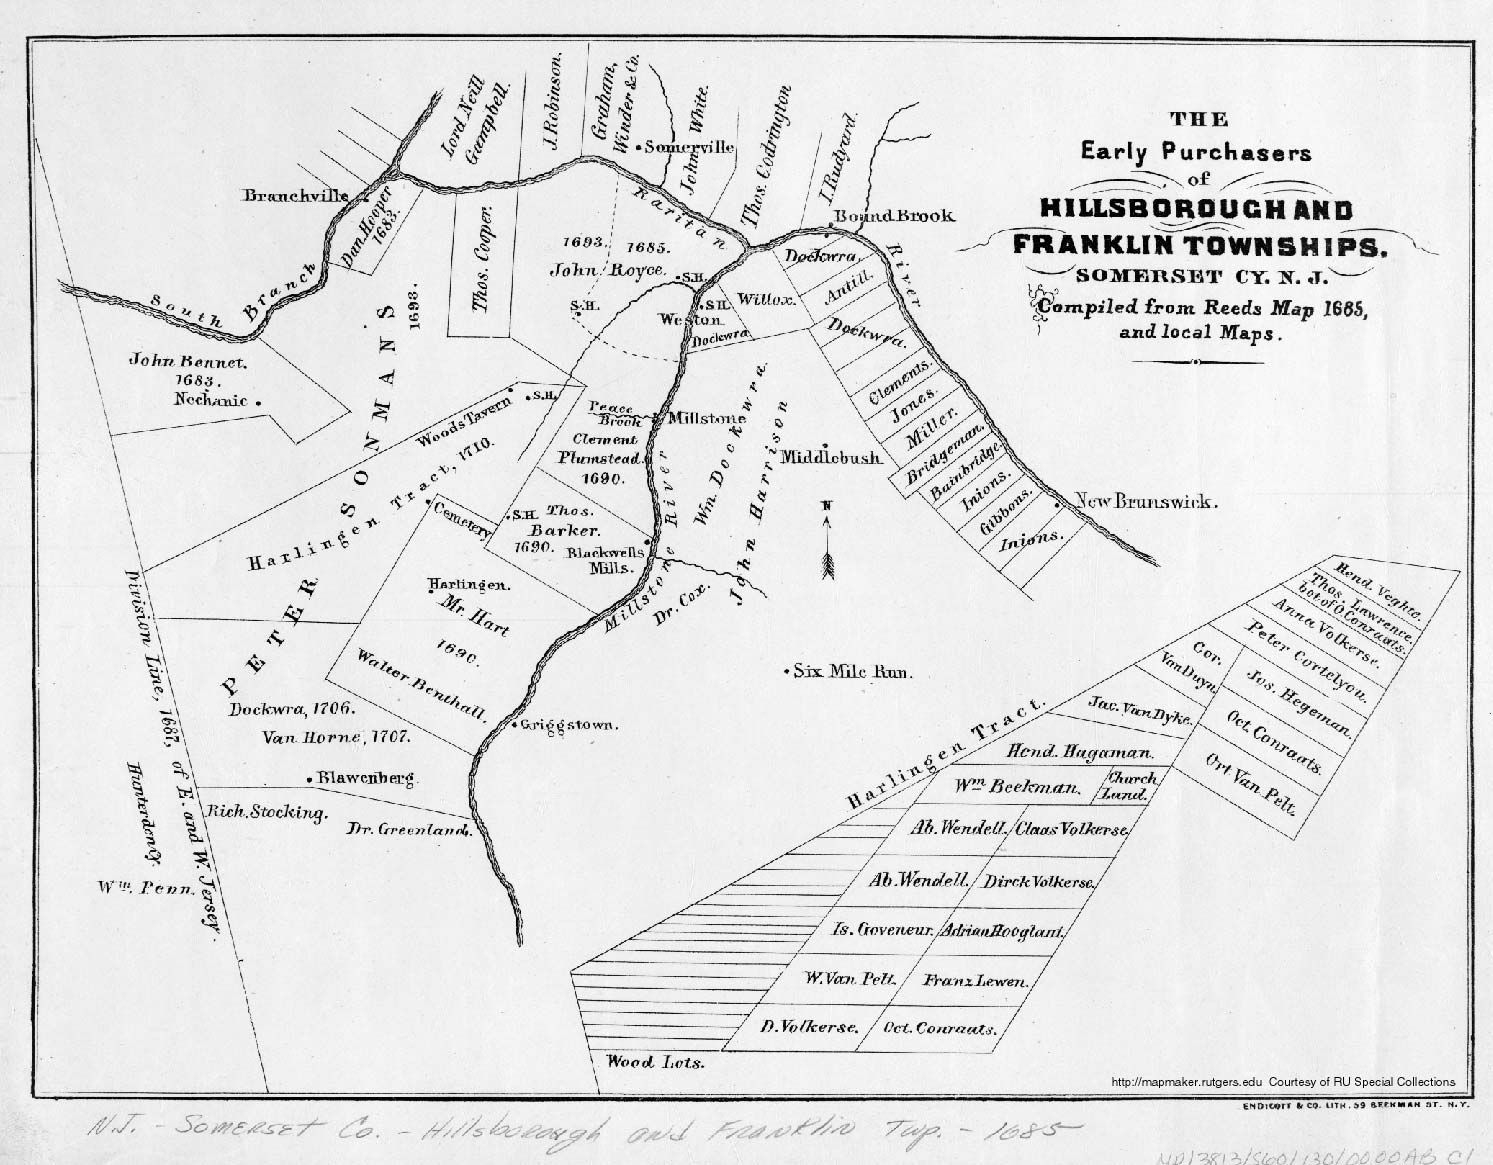 New jersey somerset county flagtown - Early Purchasers Of Hillsborough Montgomery And Franklin Townships 1685